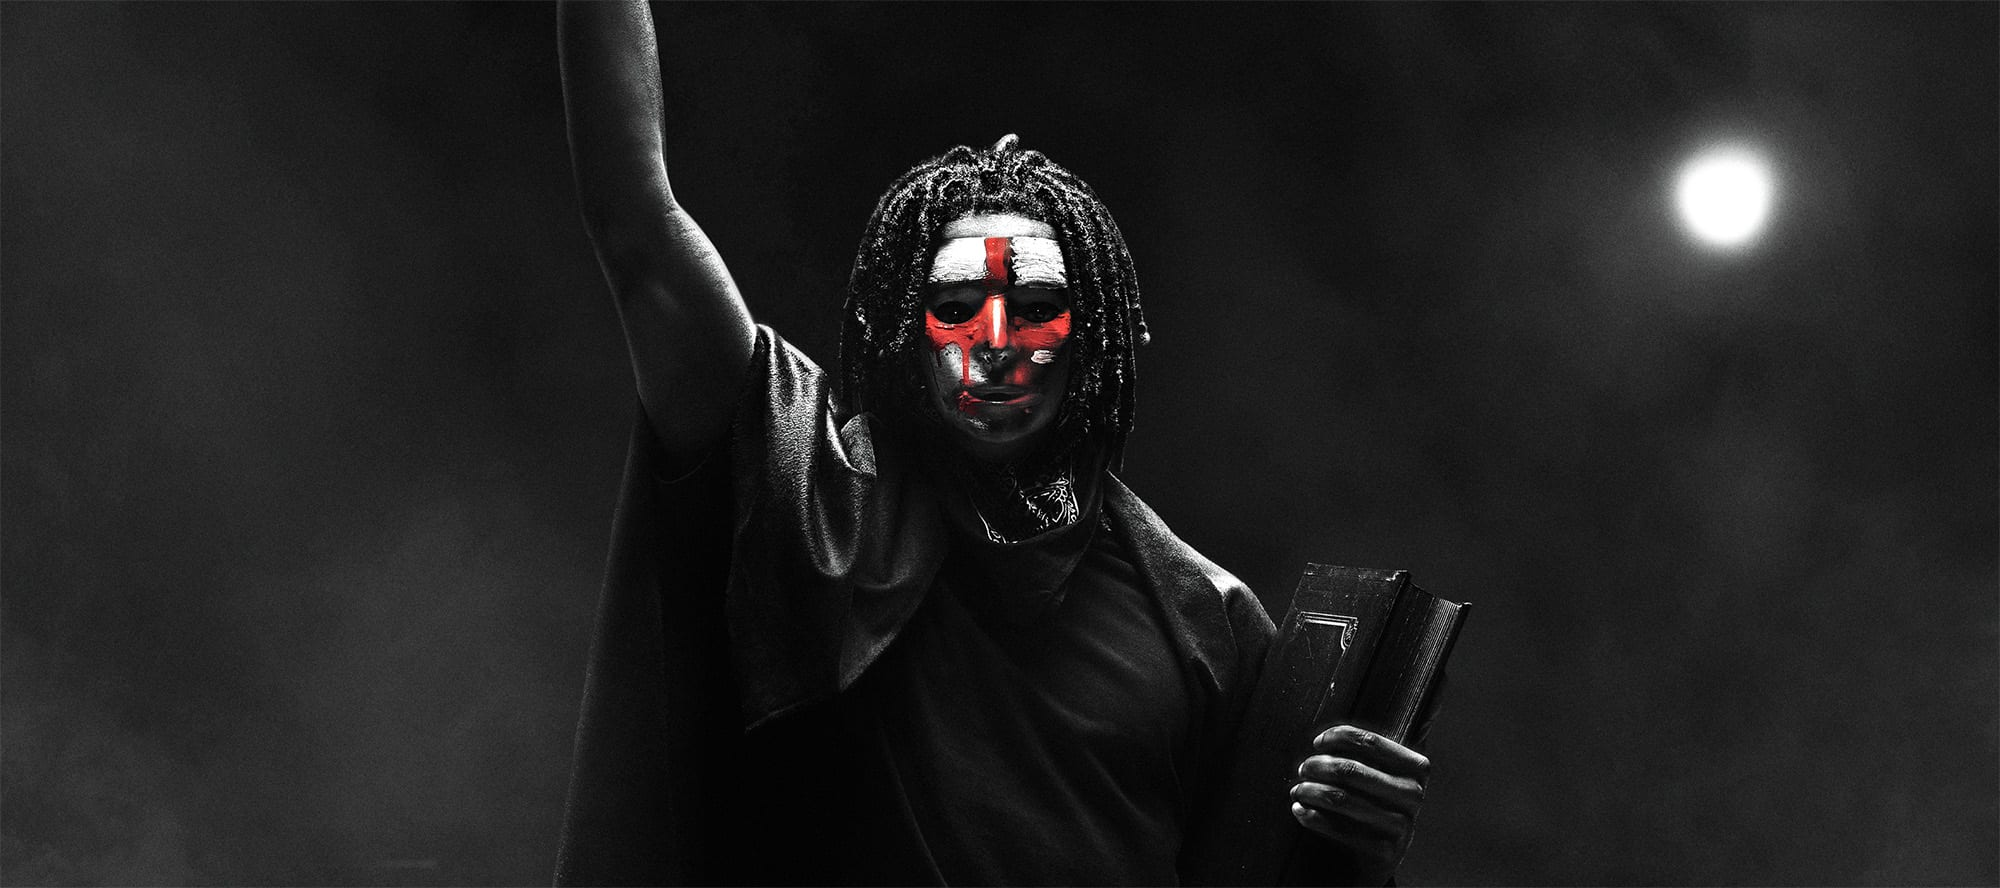 'The Purge' films might exploit sociopolitical issues – but like it or not, 'The Purge' movies are shaping up to be the defining franchise of the decade.